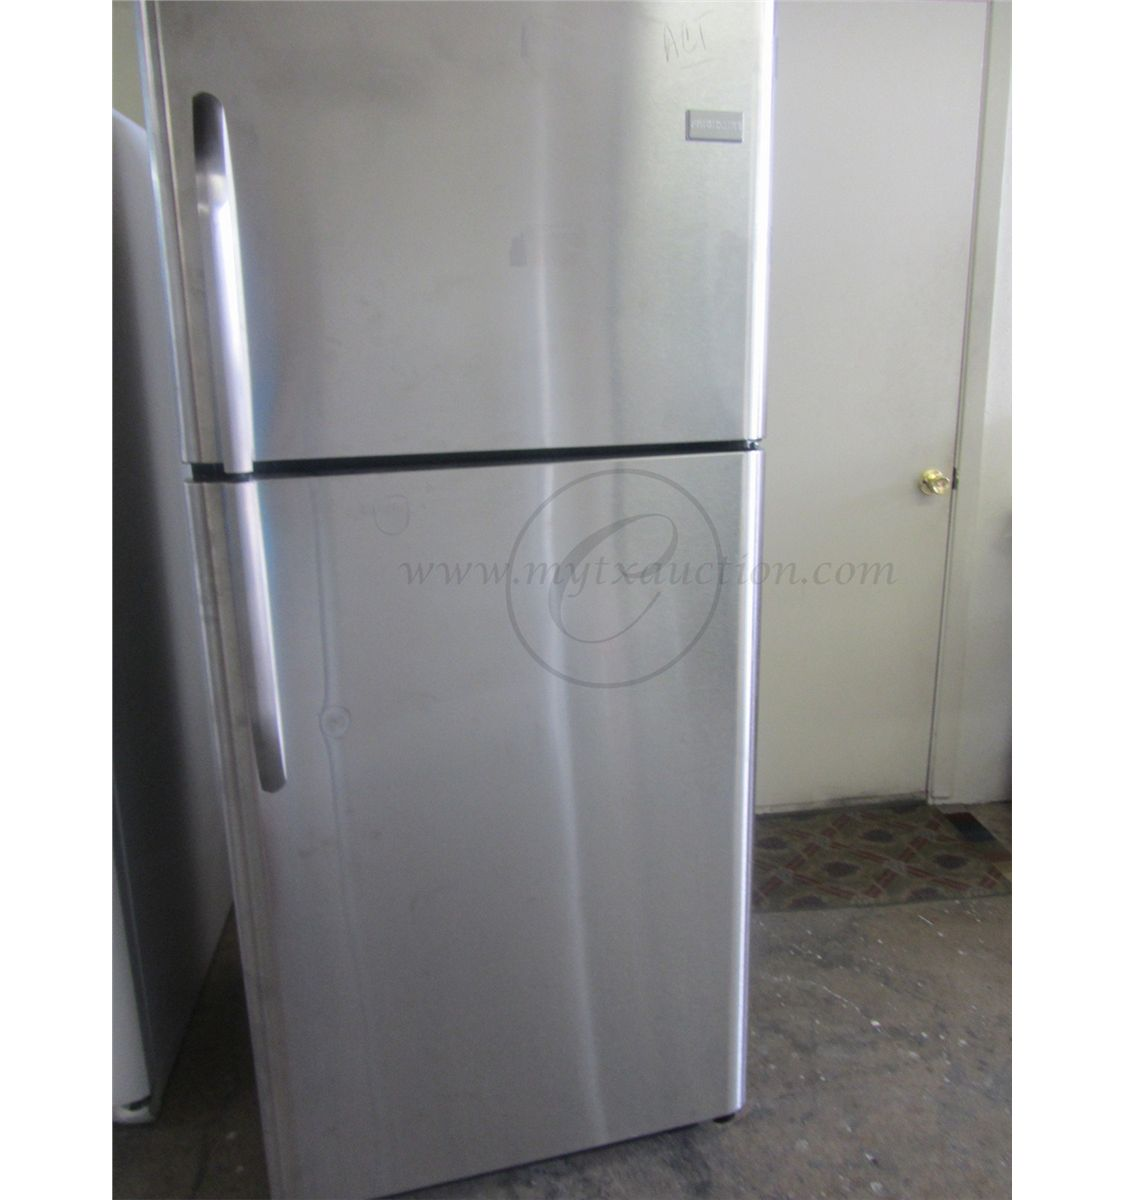 Frigidaire 20 6 Cubic Foot Top Freezer Refrigerator Scratch And Dent See Known Defects For Descripti